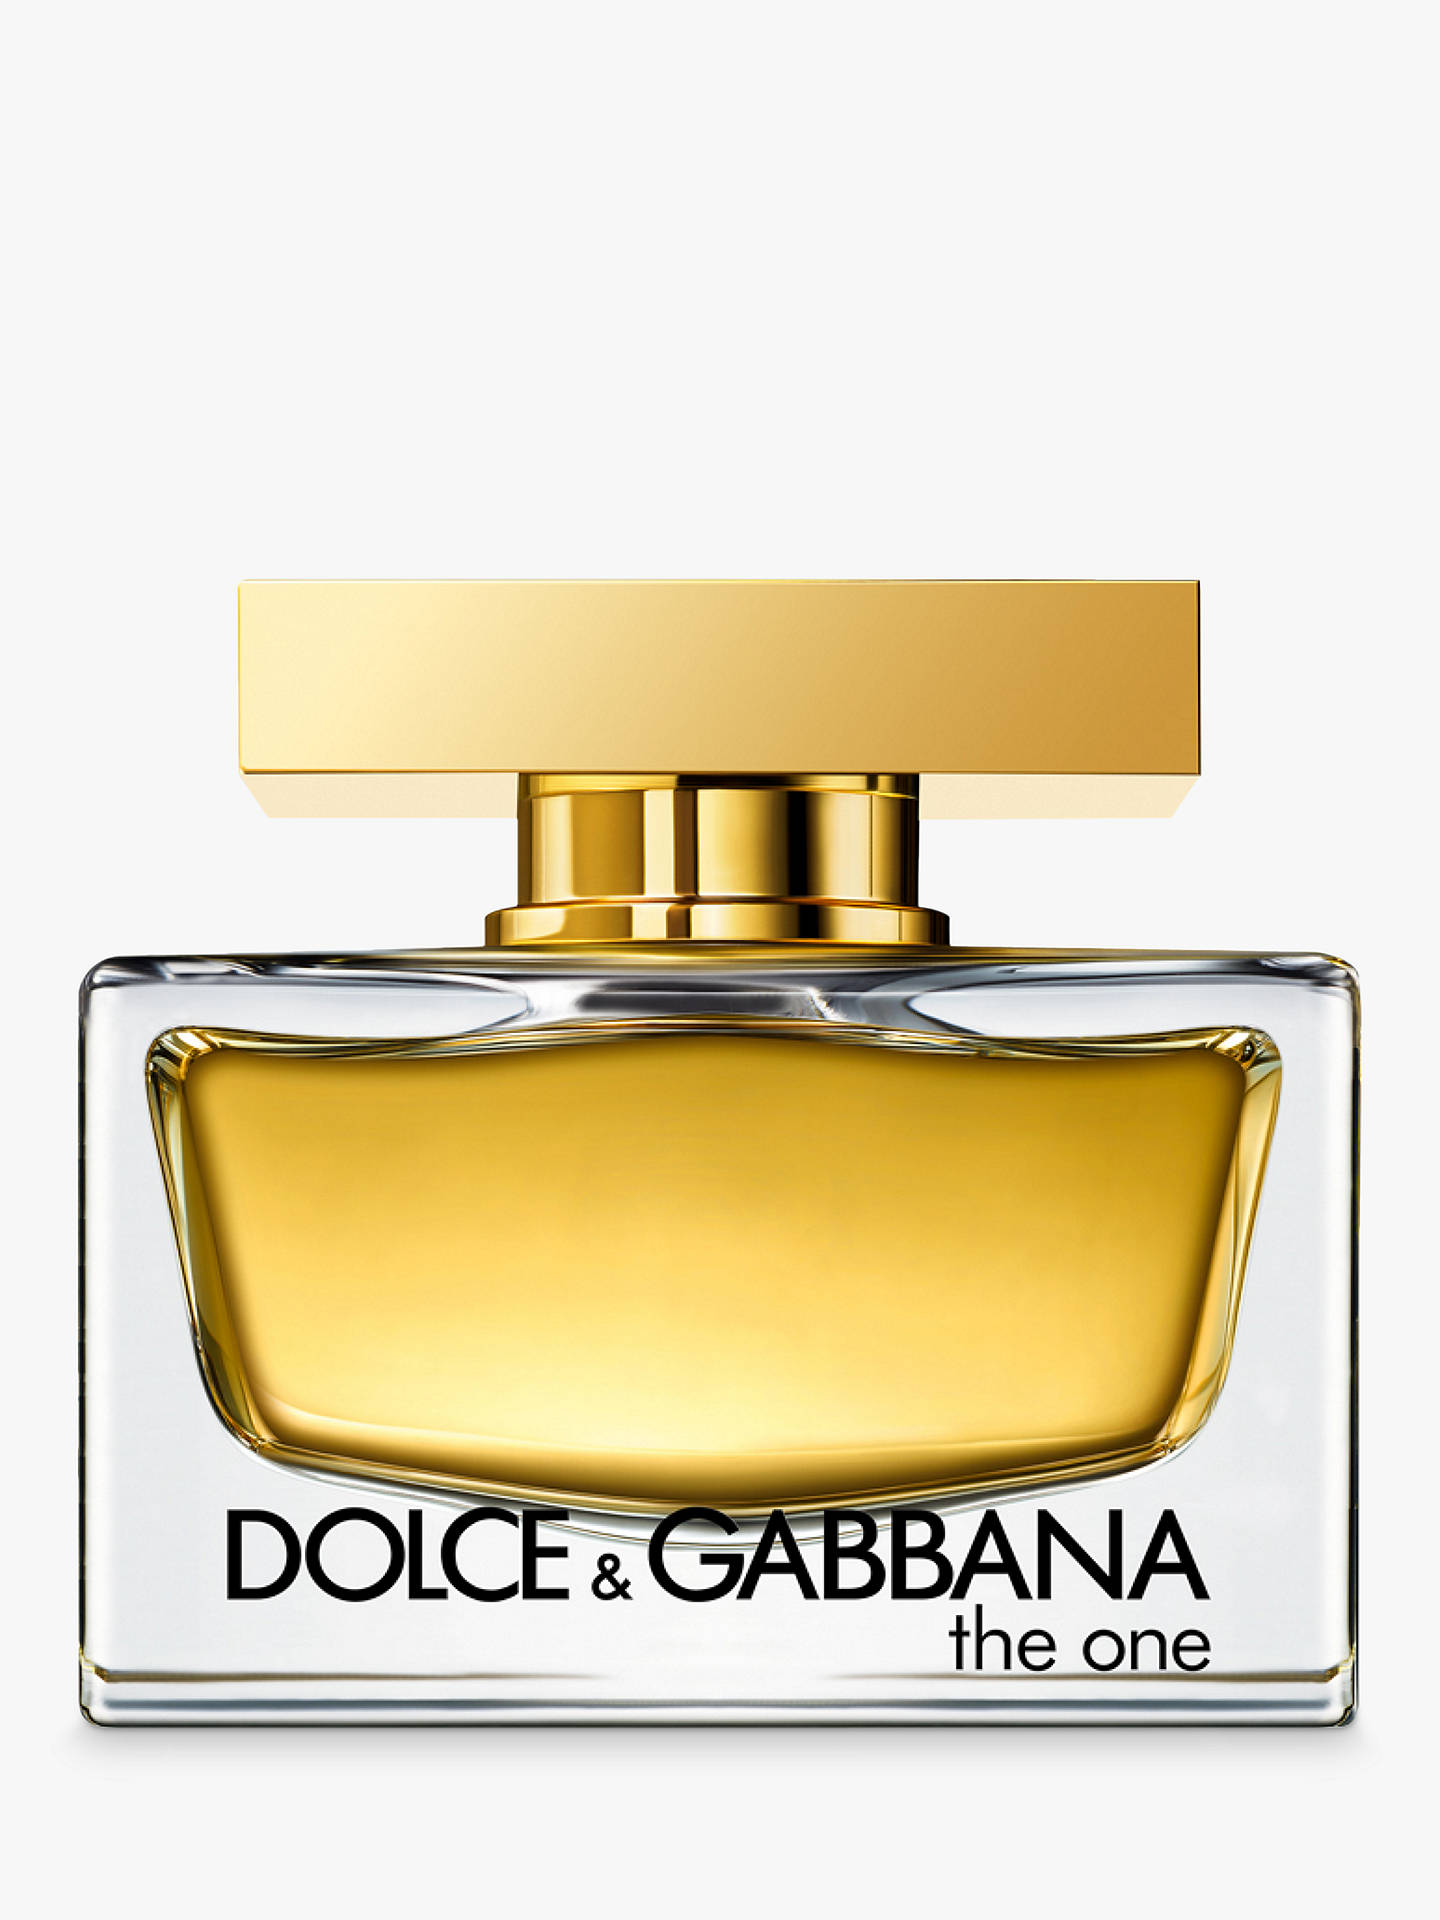 BuyDolce & Gabbana The One Eau de Parfum, 50ml Online at johnlewis.com